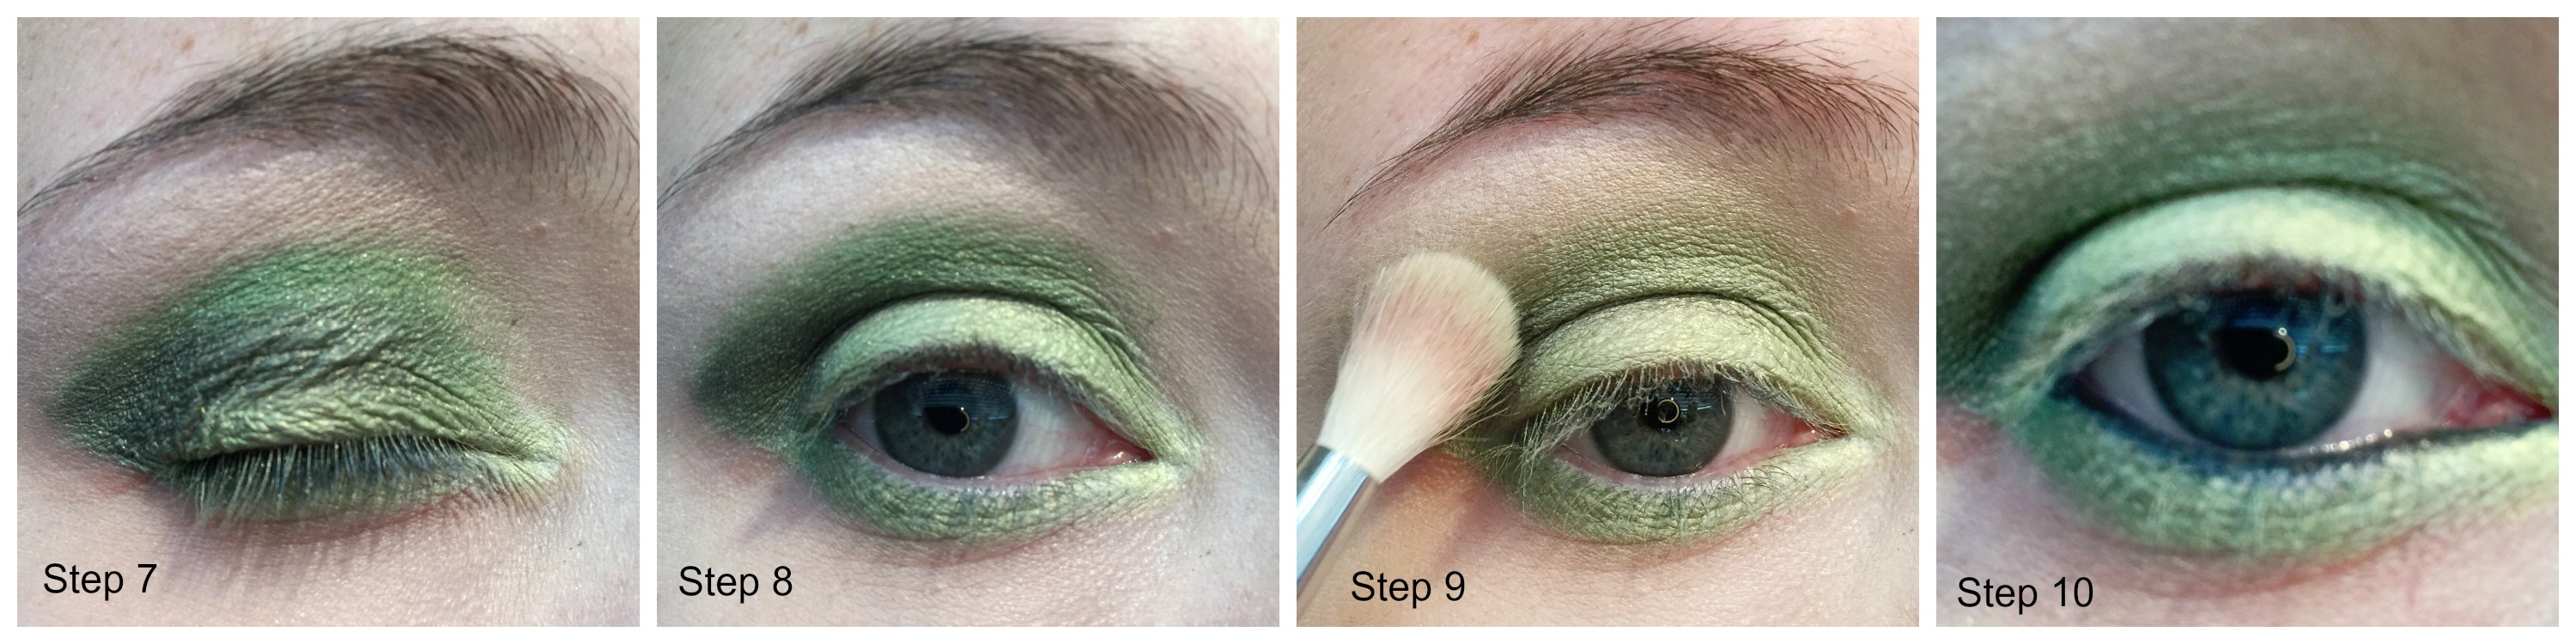 tutorials streaks and smudges step 7 use pencil brush to apply dark green shadow to crease at the outer corner and half way along the eye